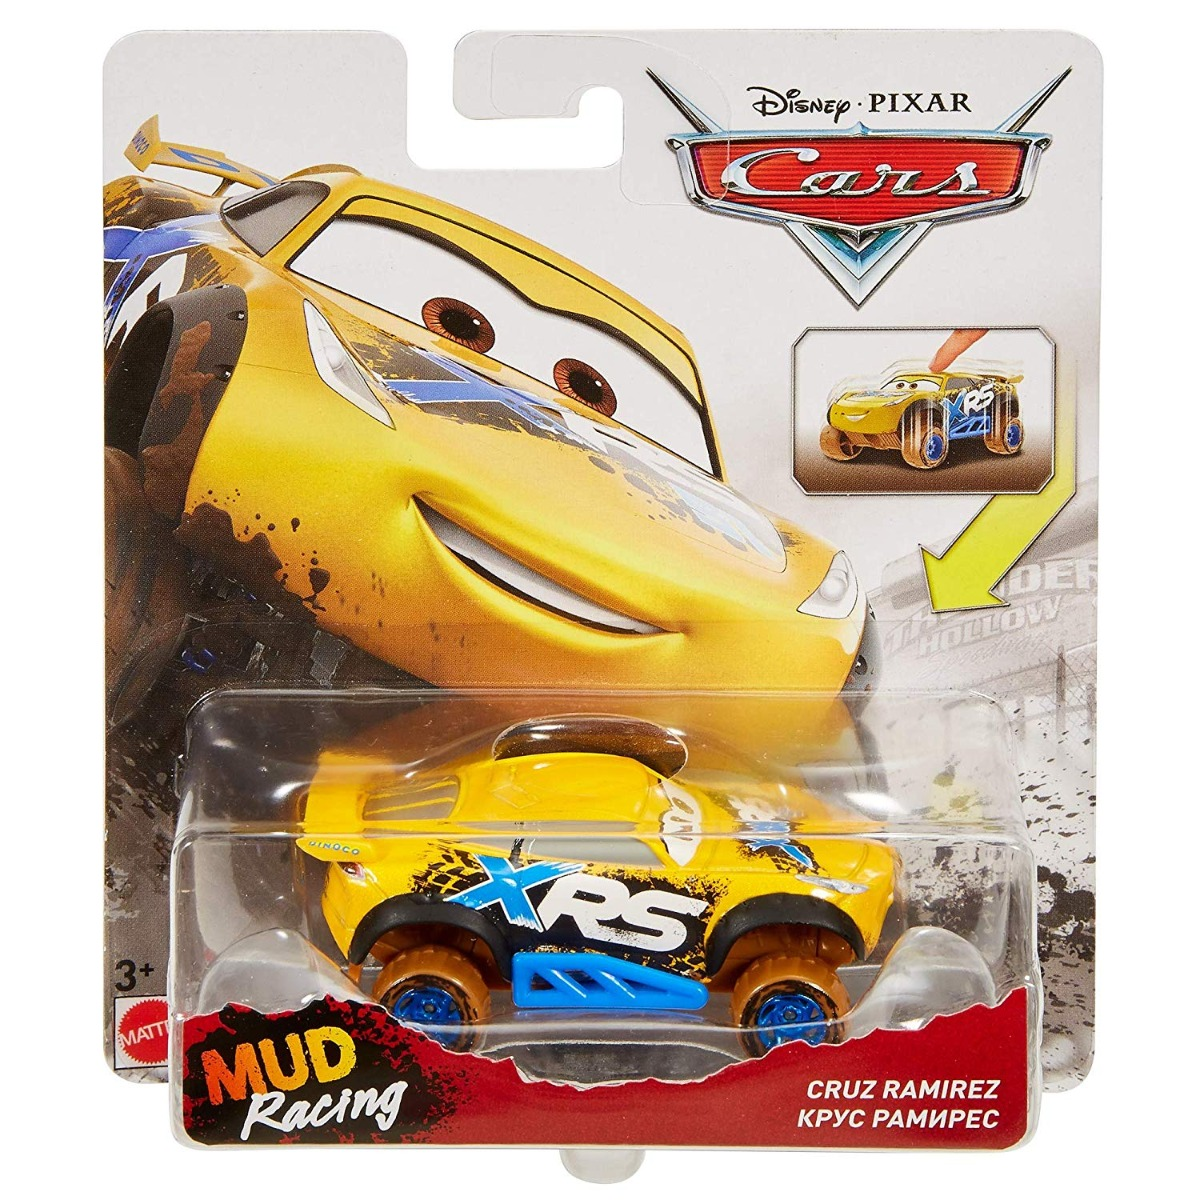 Masinuta Disney Cars XRS Mud Racing, Cruz Ramirez, GBJ37